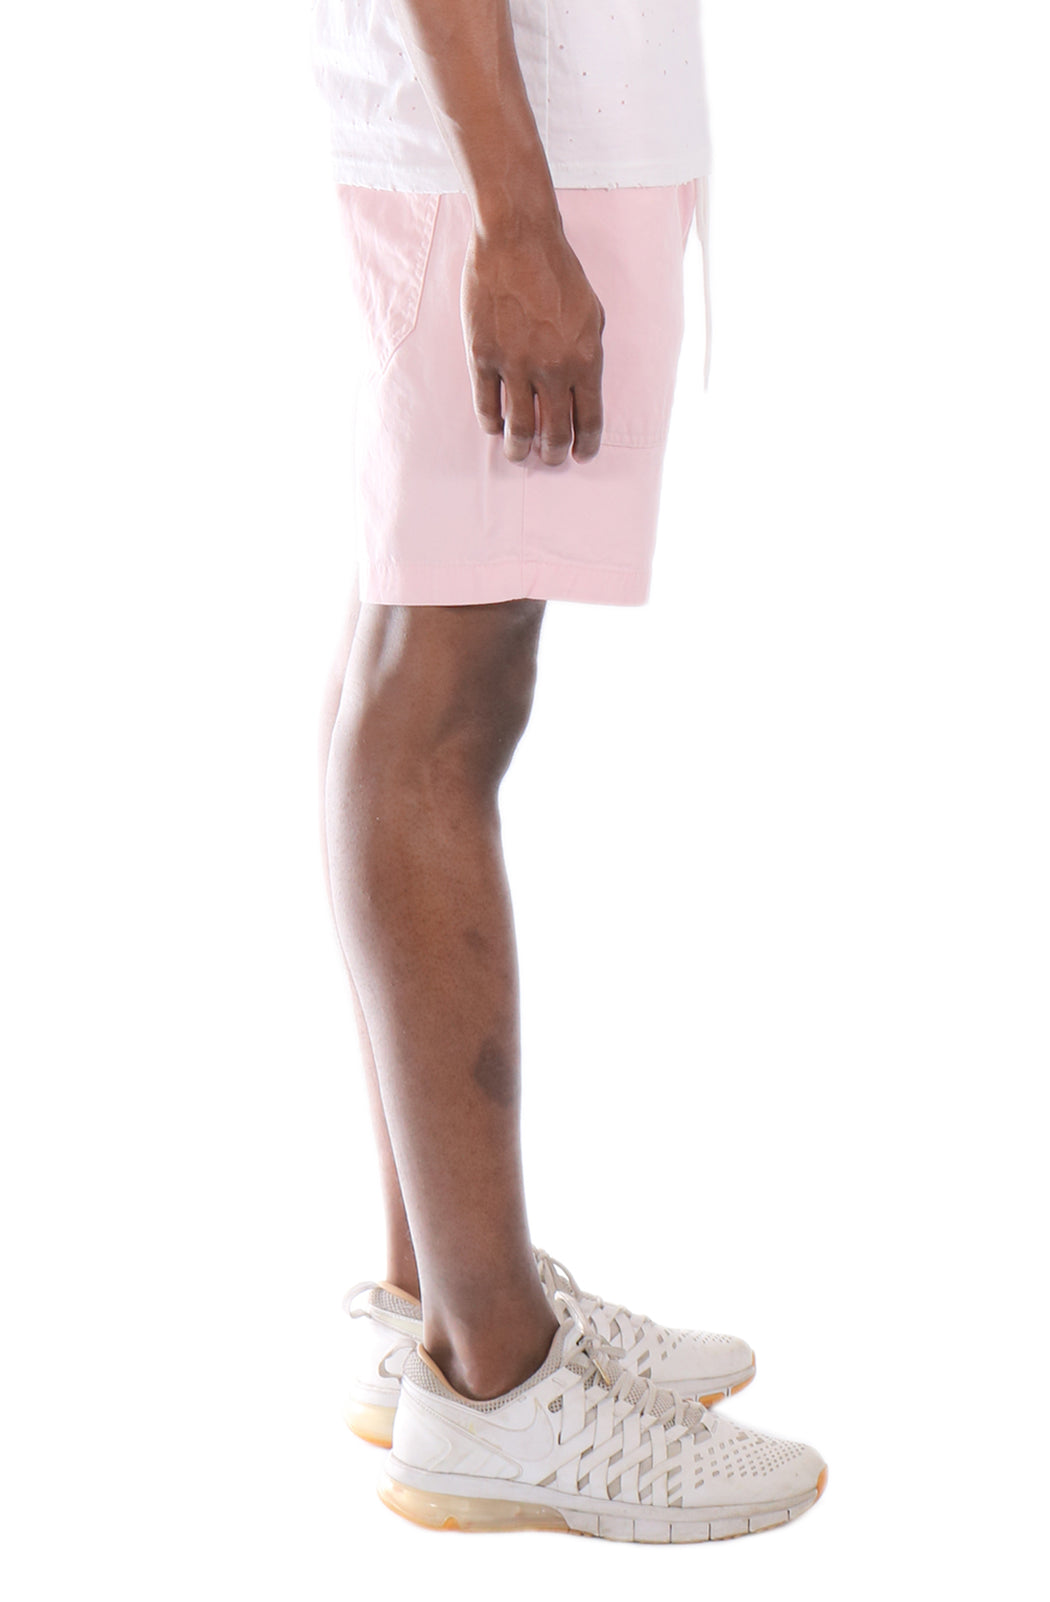 Allston Outfitter Pastel Color Cotton Twill Elastic Banded Shorts in Pastel Pink